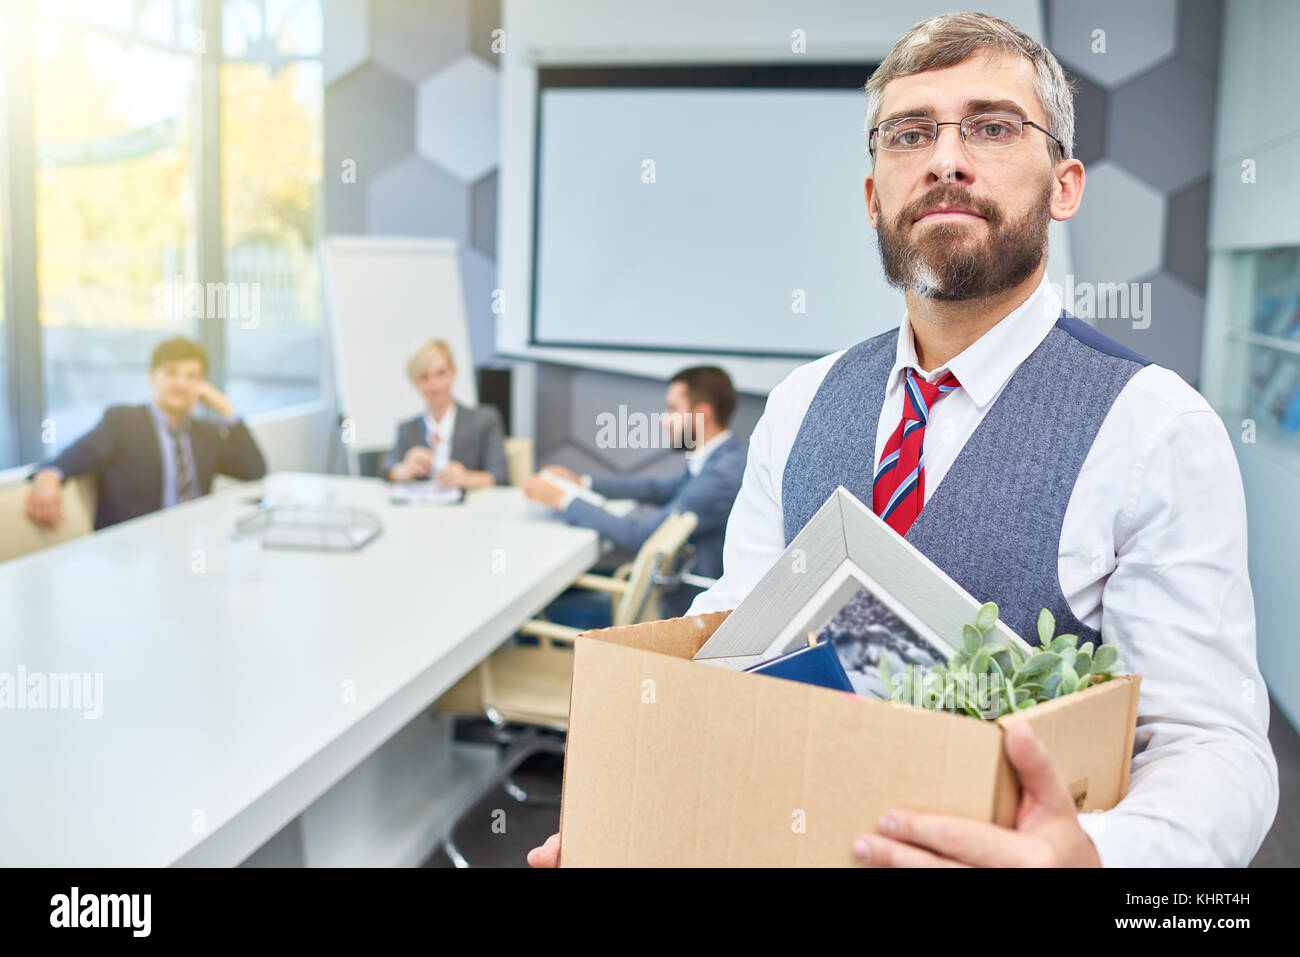 Portrait of mature bearded businessman holding box of personal belongings being fired from work in company, copy - Stock Image